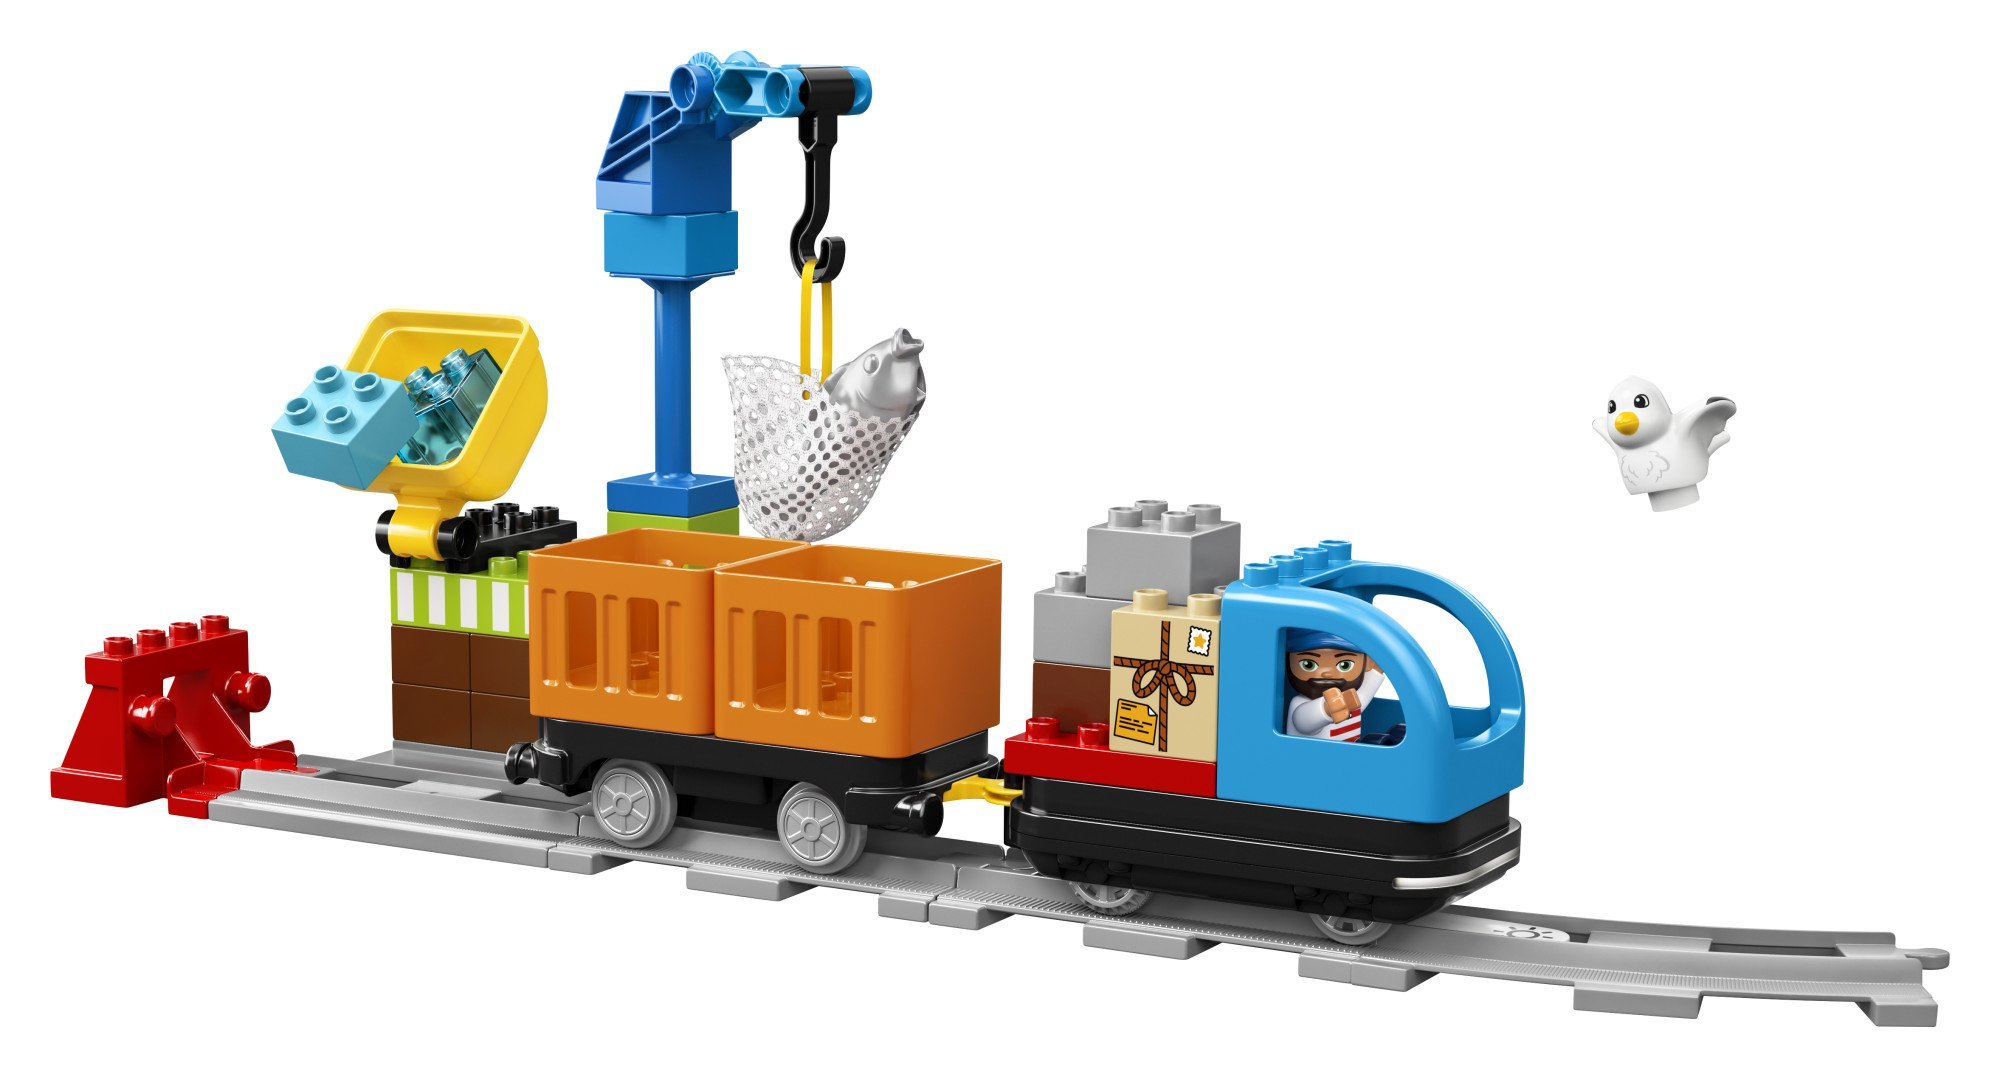 LEGO DUPLO Cargo Train 10875 Battery-Operated Building Blocks Set, Best Engineering and STEM Toy for Toddlers (105 Pieces) (Amazon Exclusive) by LEGO DUPLO Trains (Image #6)